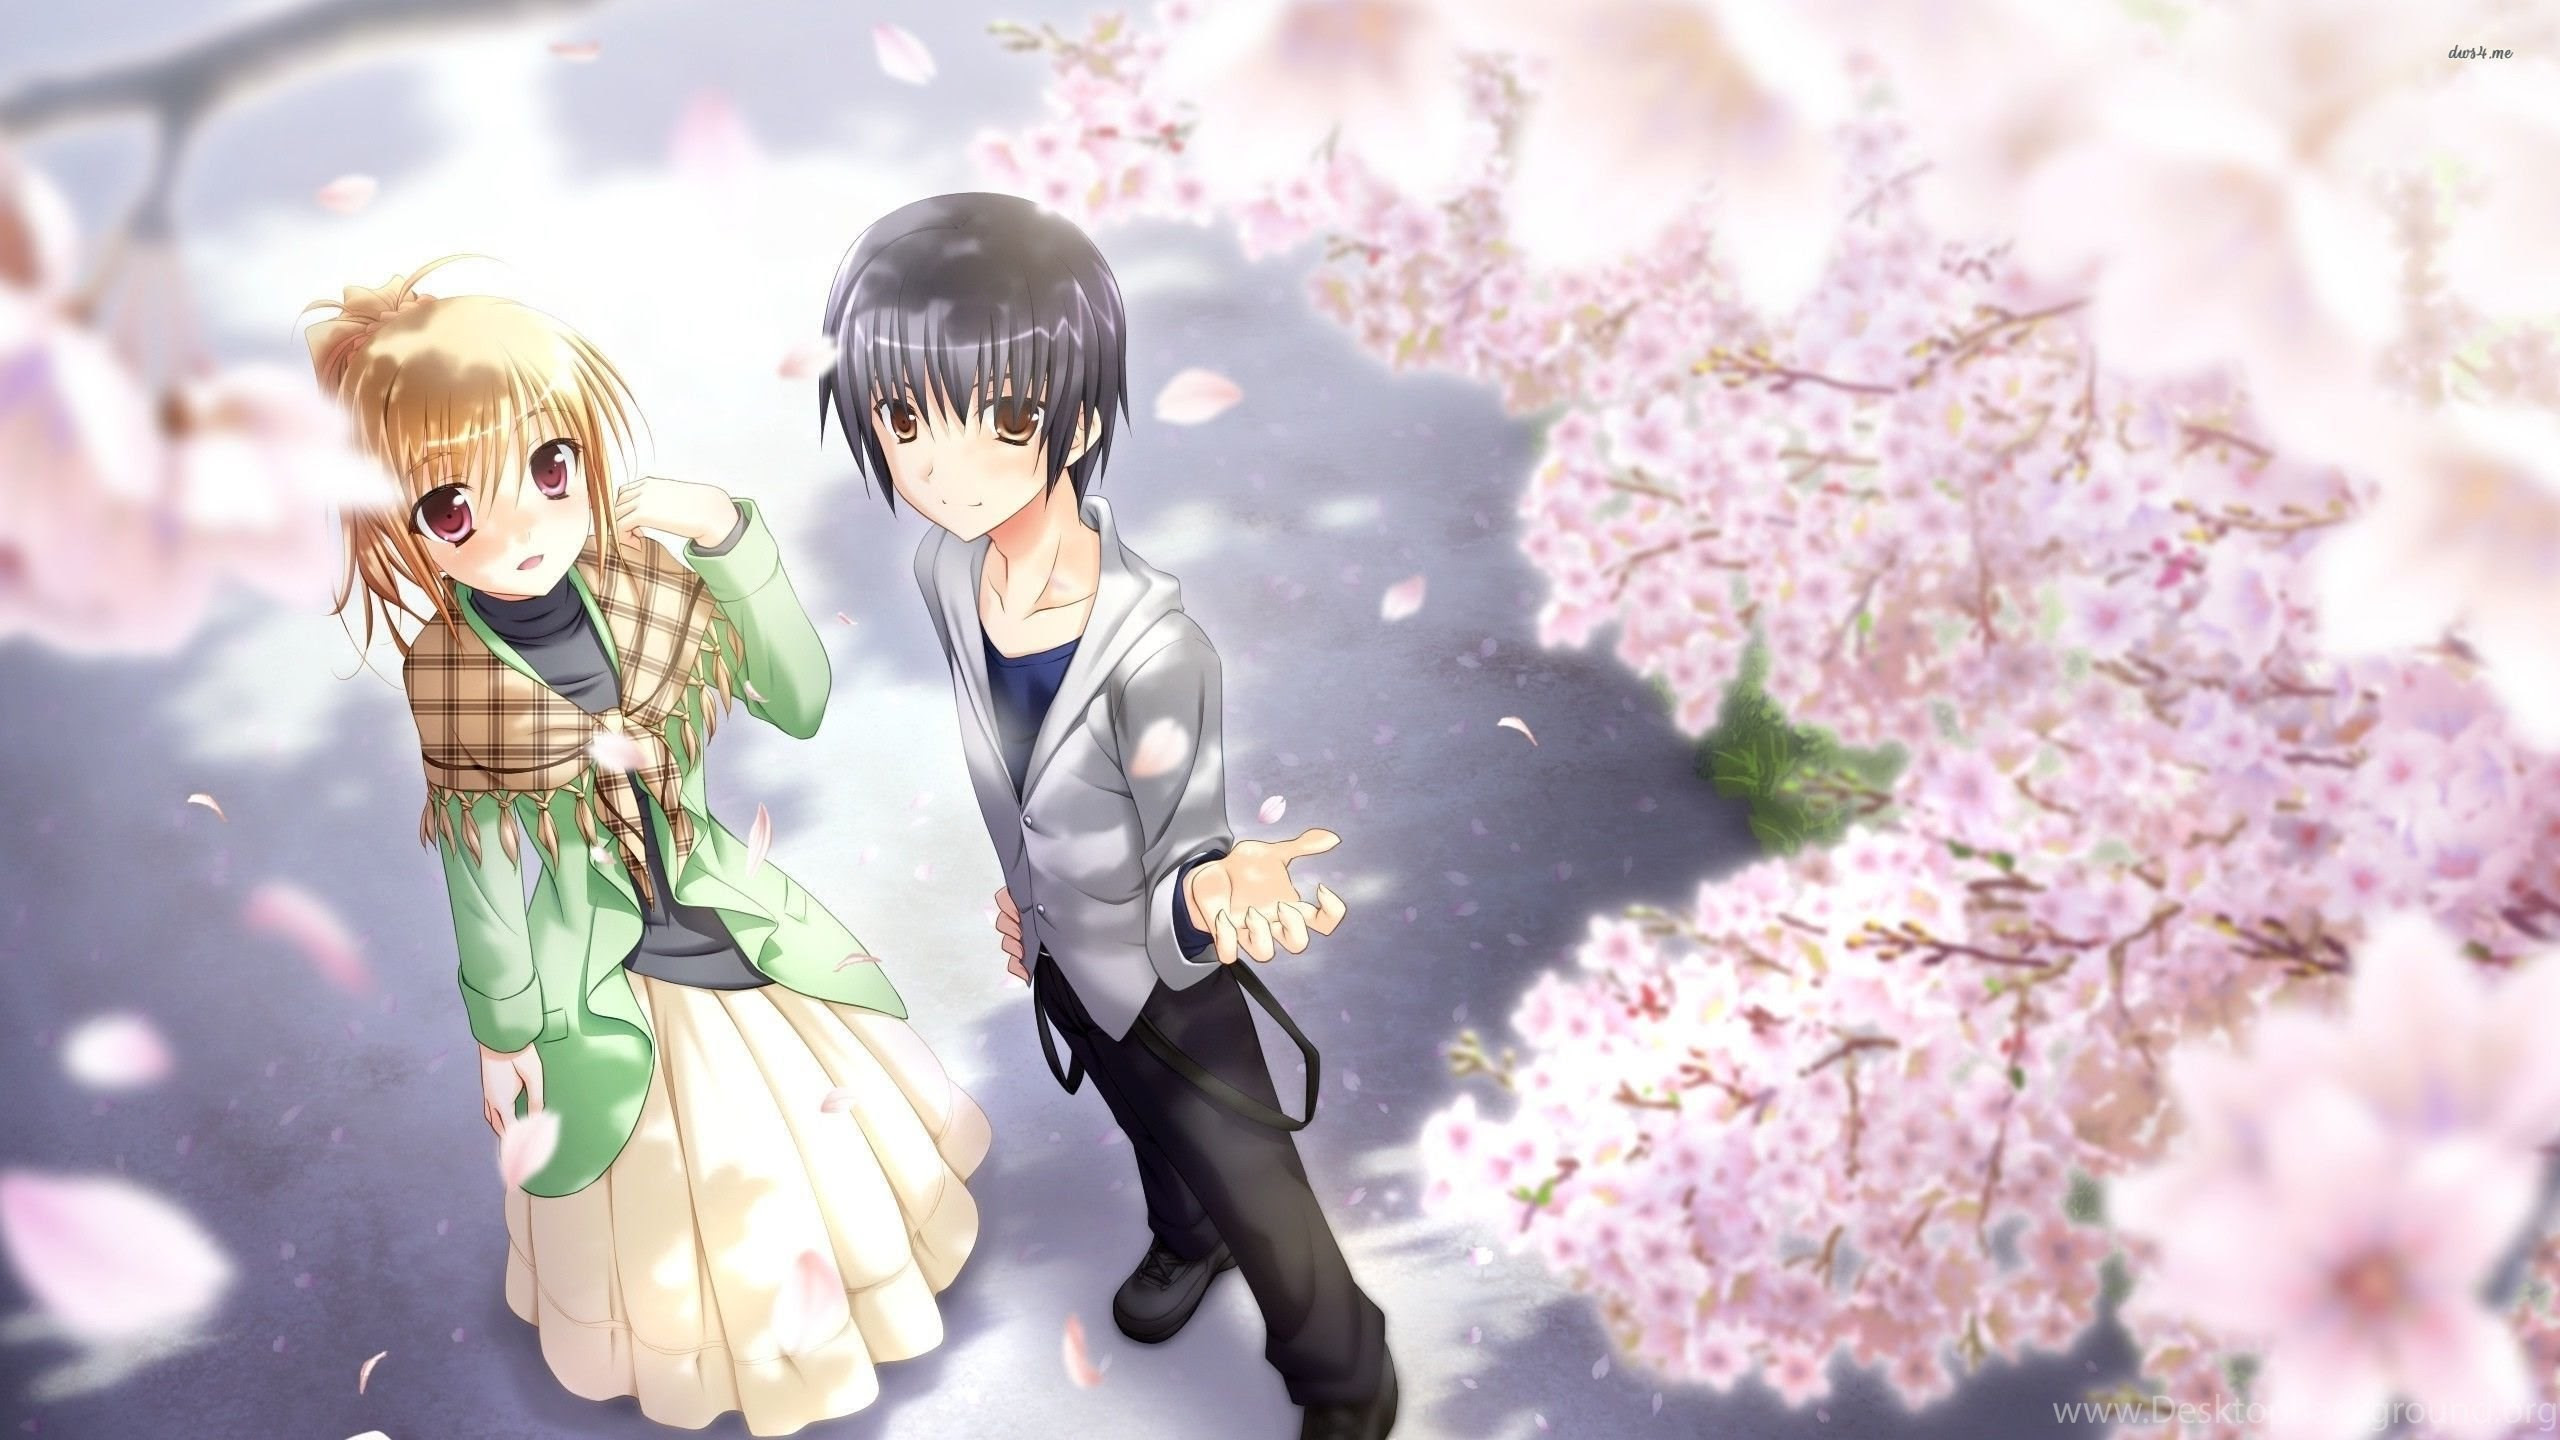 Anime Couple Wallpaper (74+ images)